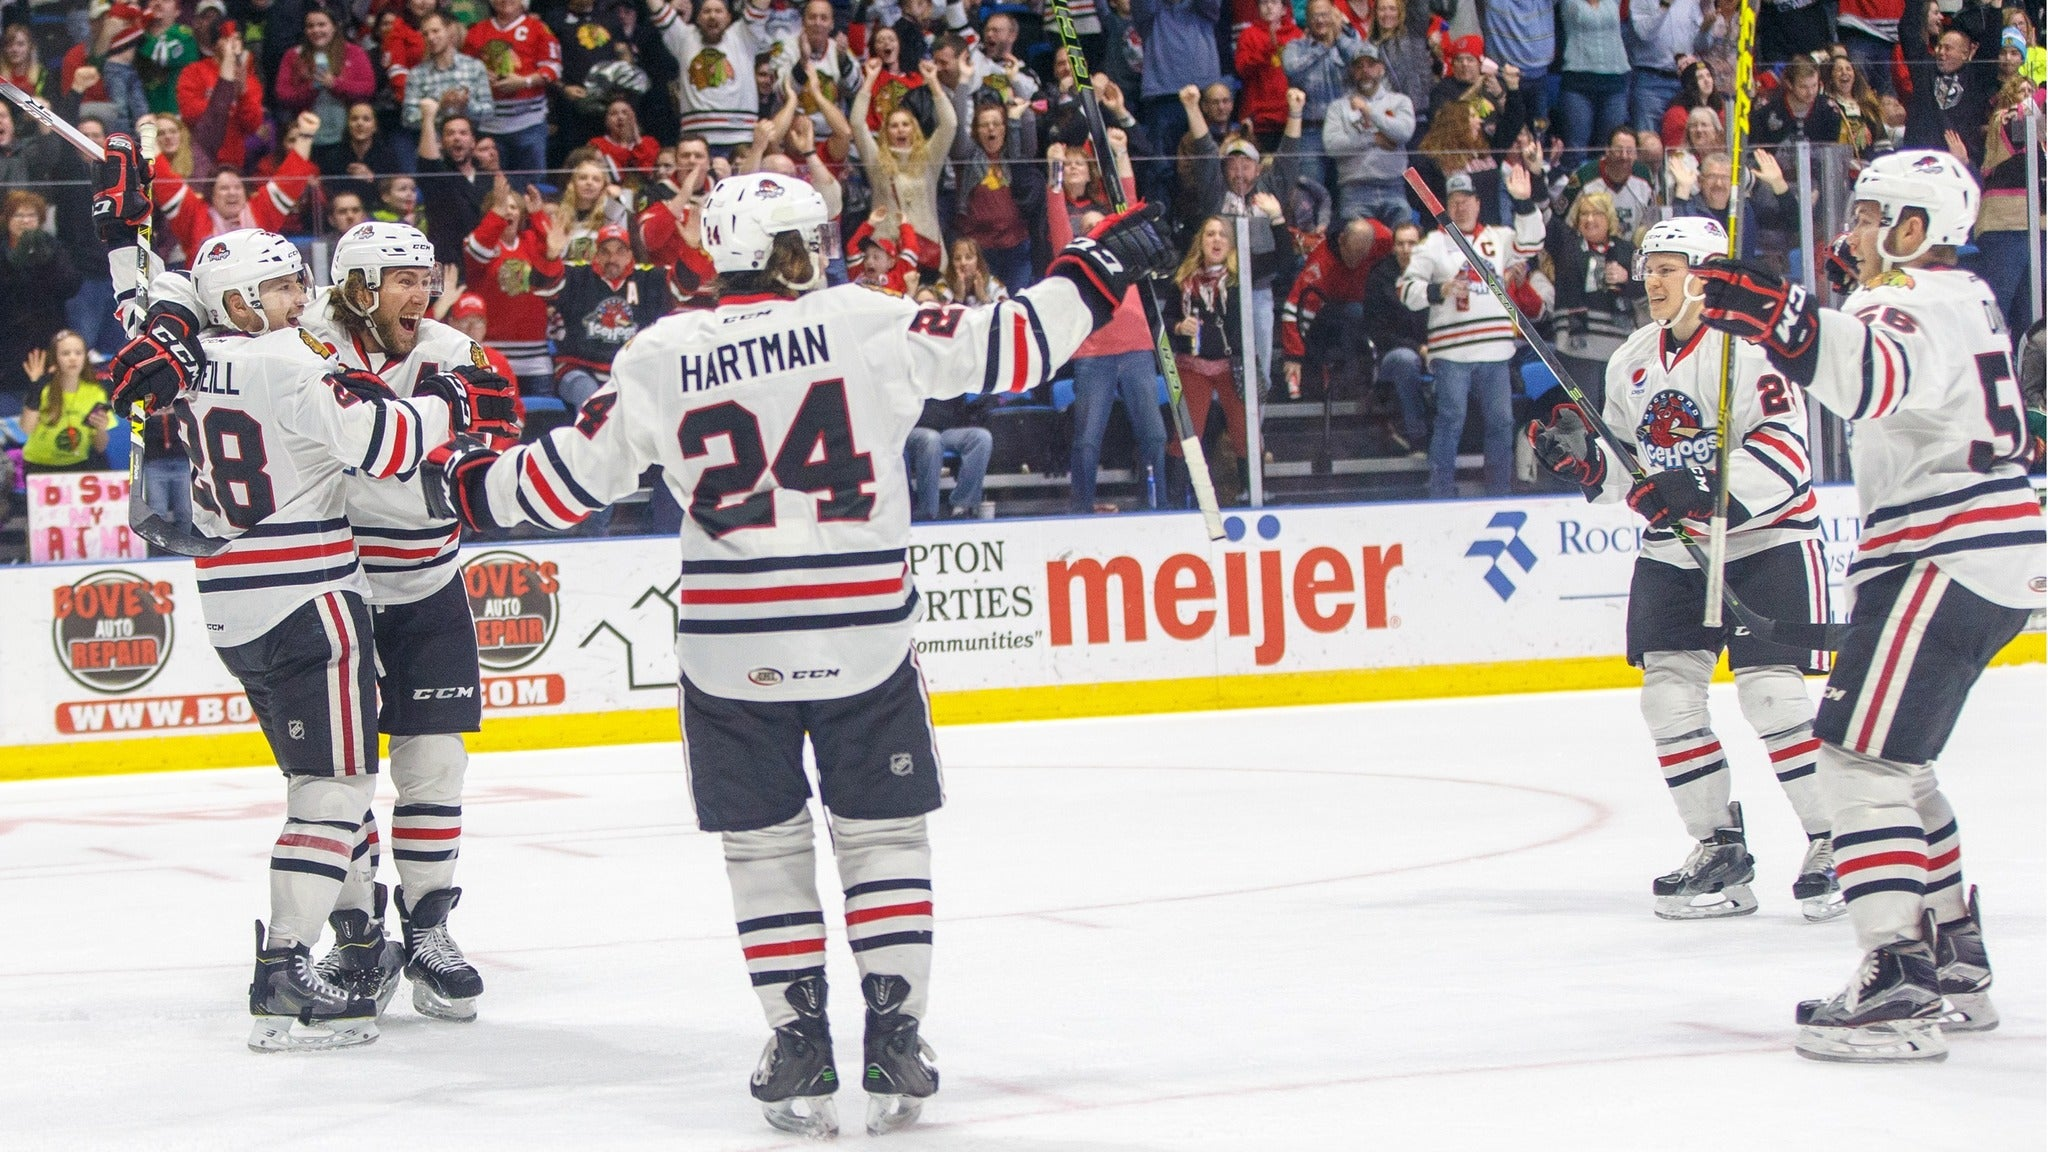 Rockford IceHogs vs. Chicago Wolves